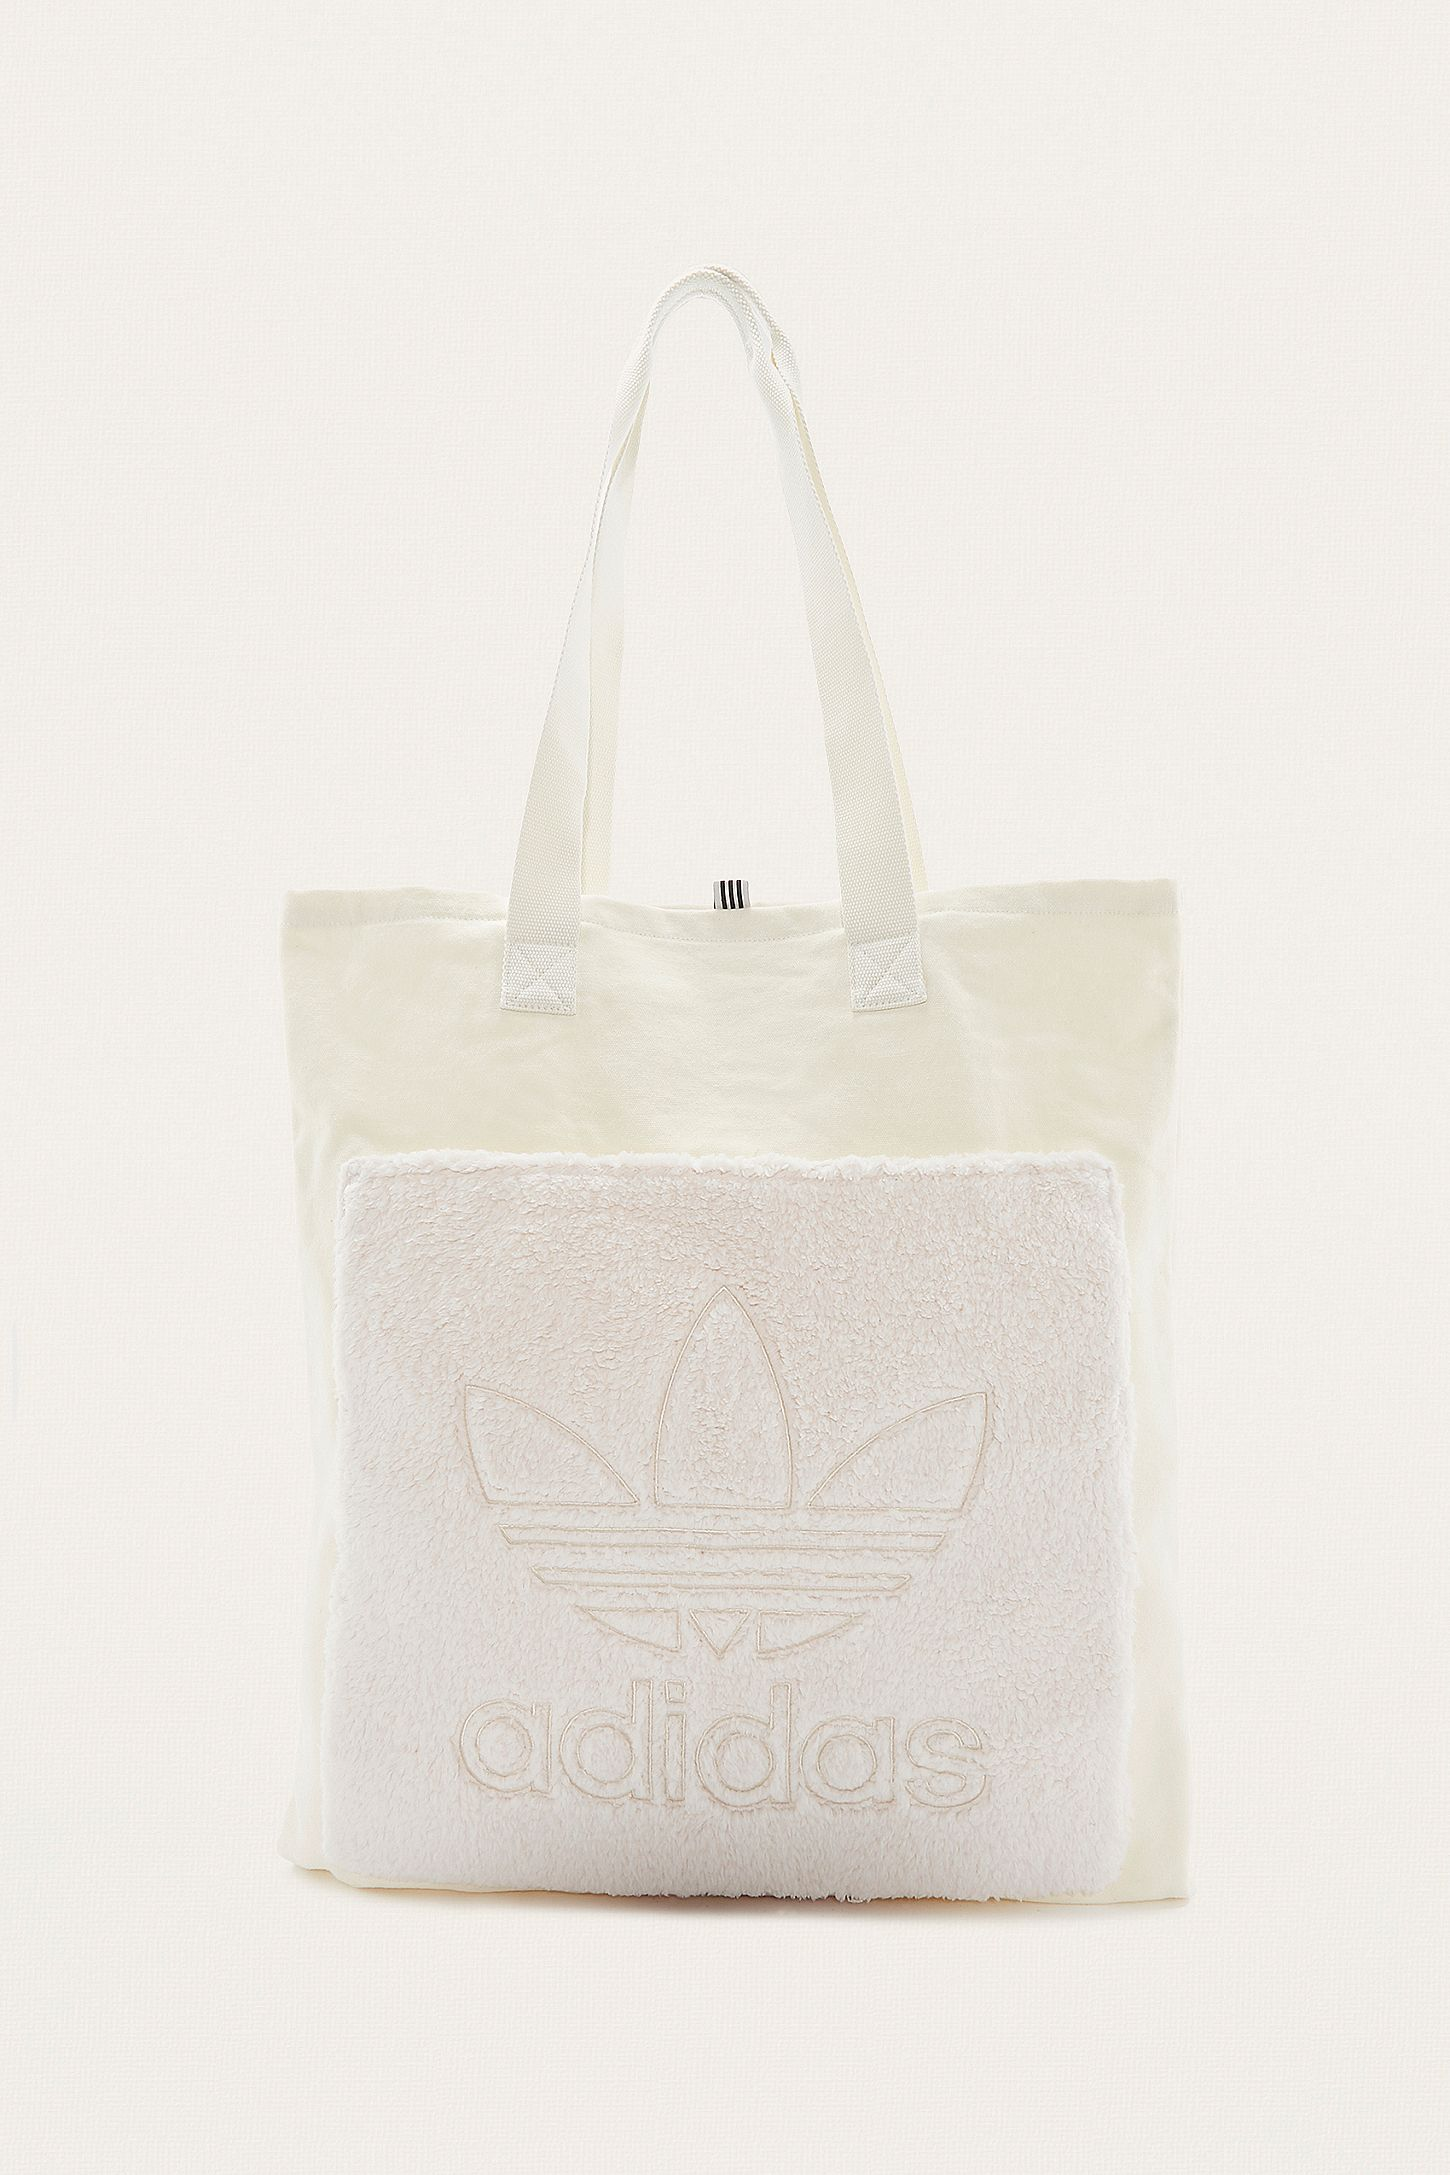 c7c274f9d8c adidas Originals Trefoil Canvas Tote Bag. Click on image to zoom. Hover to  zoom. Double Tap to Zoom